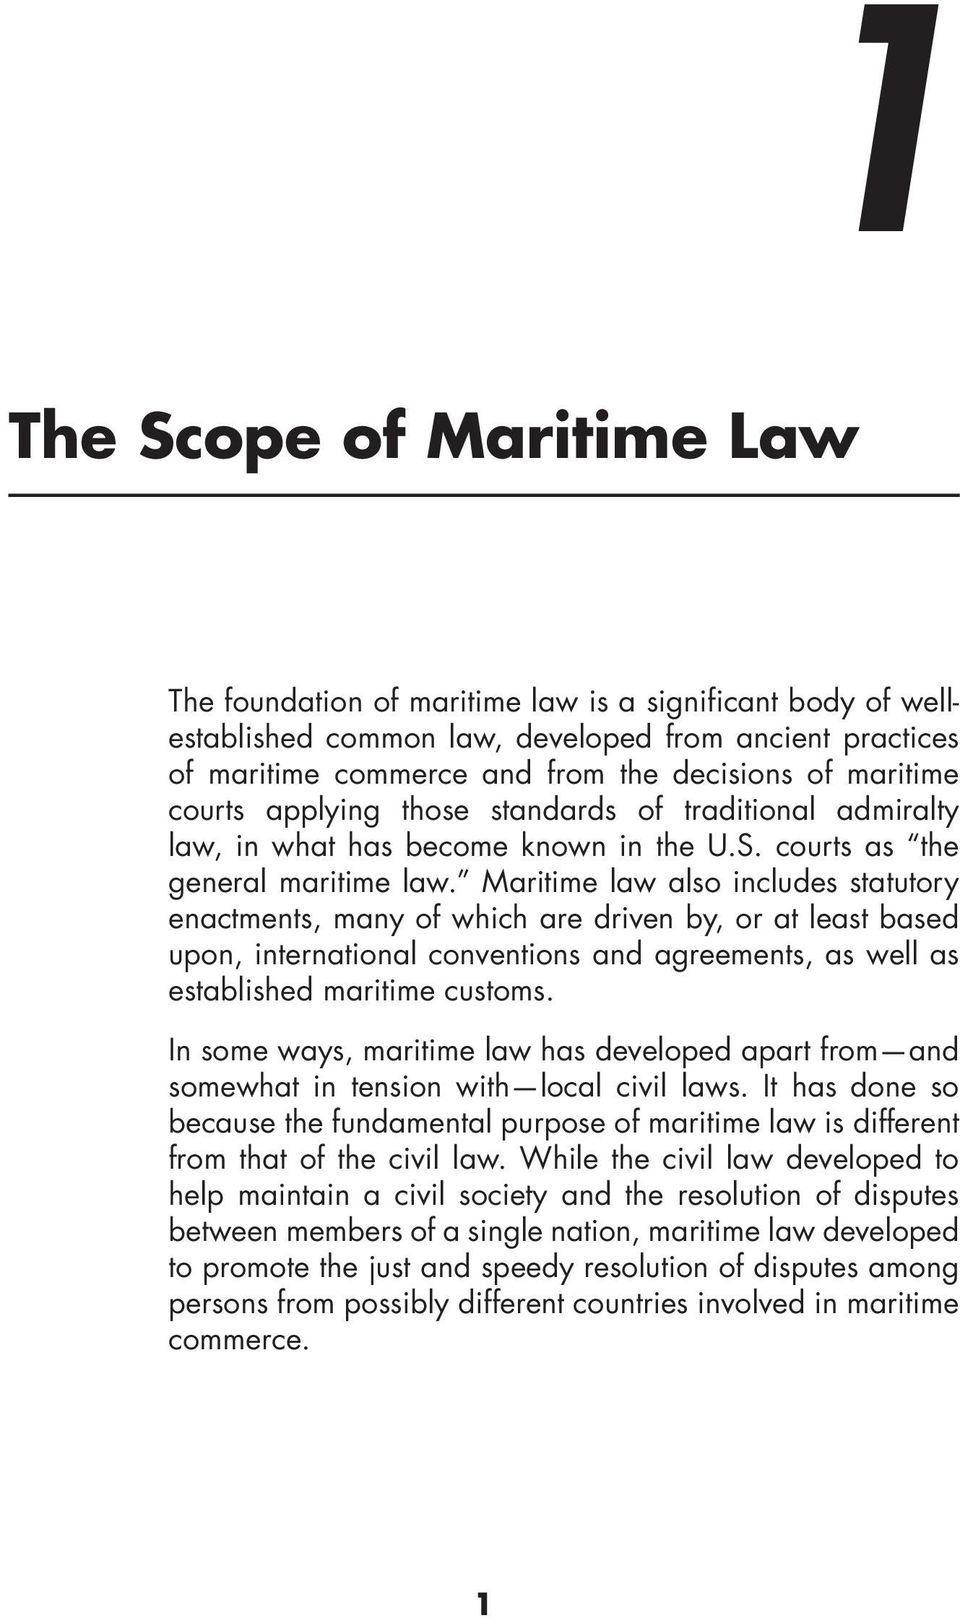 Maritime law also includes statutory enactments, many of which are driven by, or at least based upon, international conventions and agreements, as well as established maritime customs.